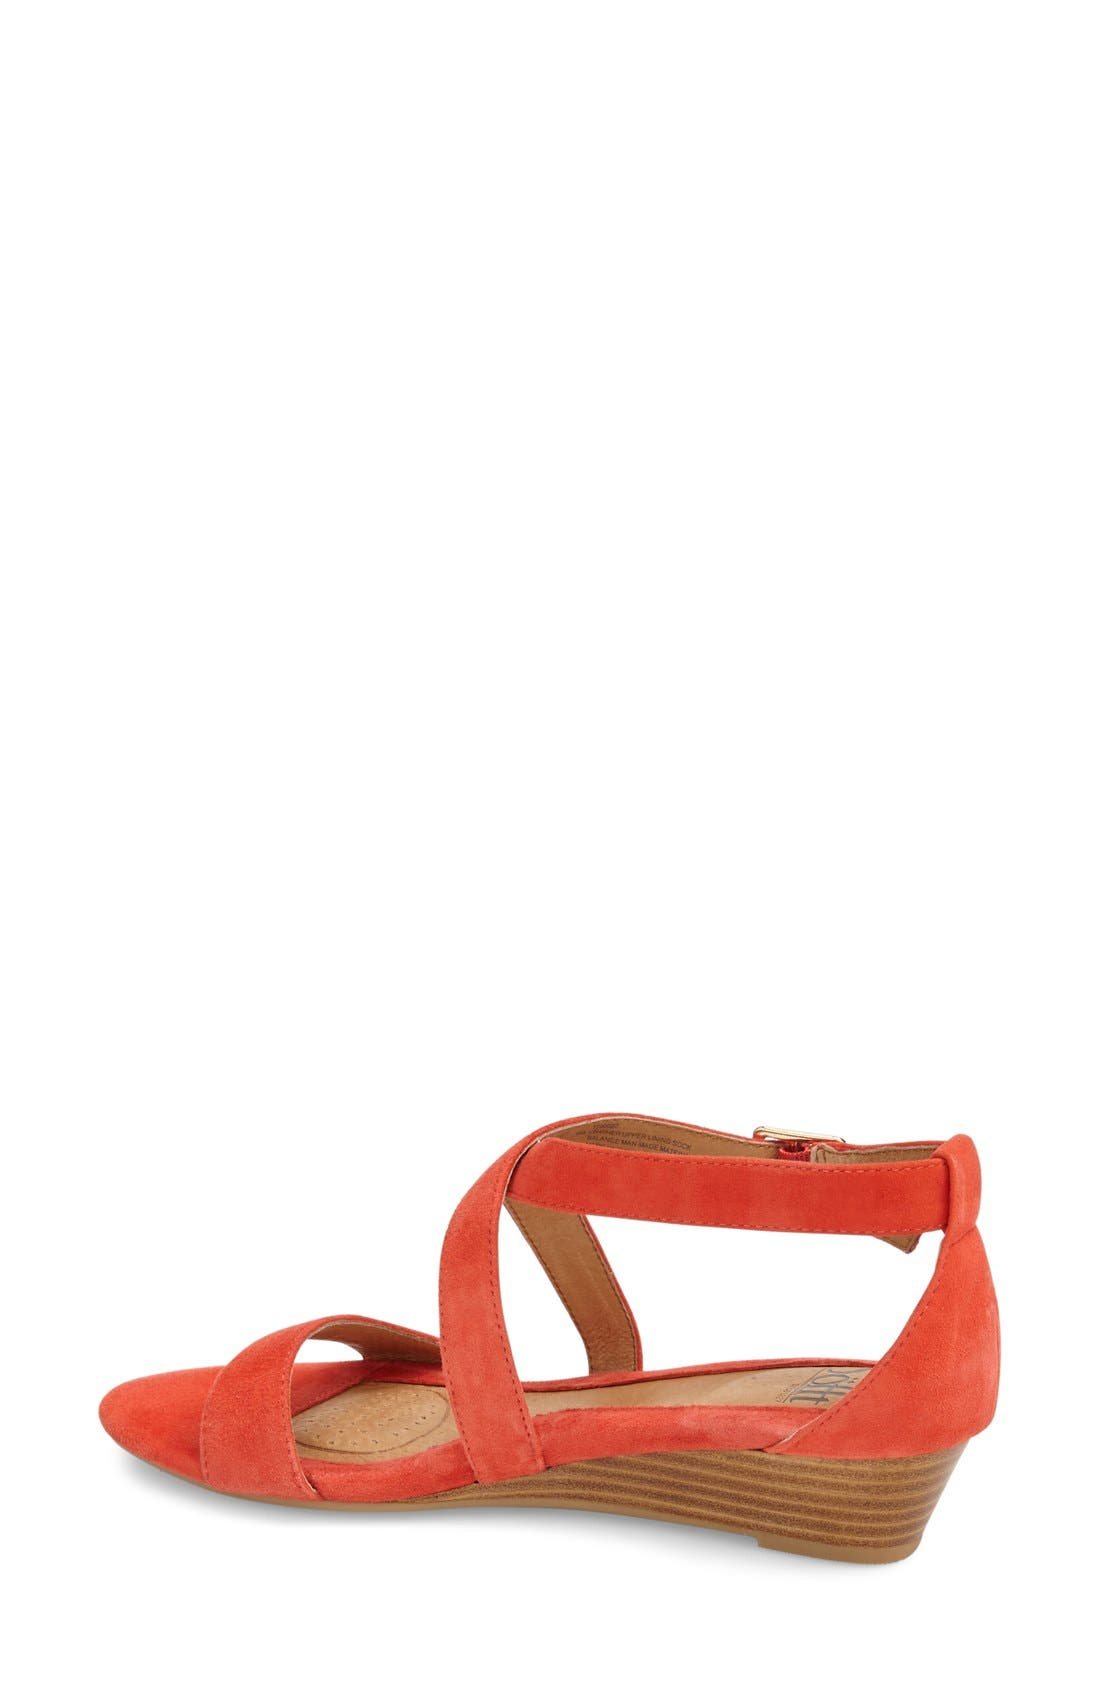 'Innis' Low Wedge Sandal,                             Alternate thumbnail 23, color,